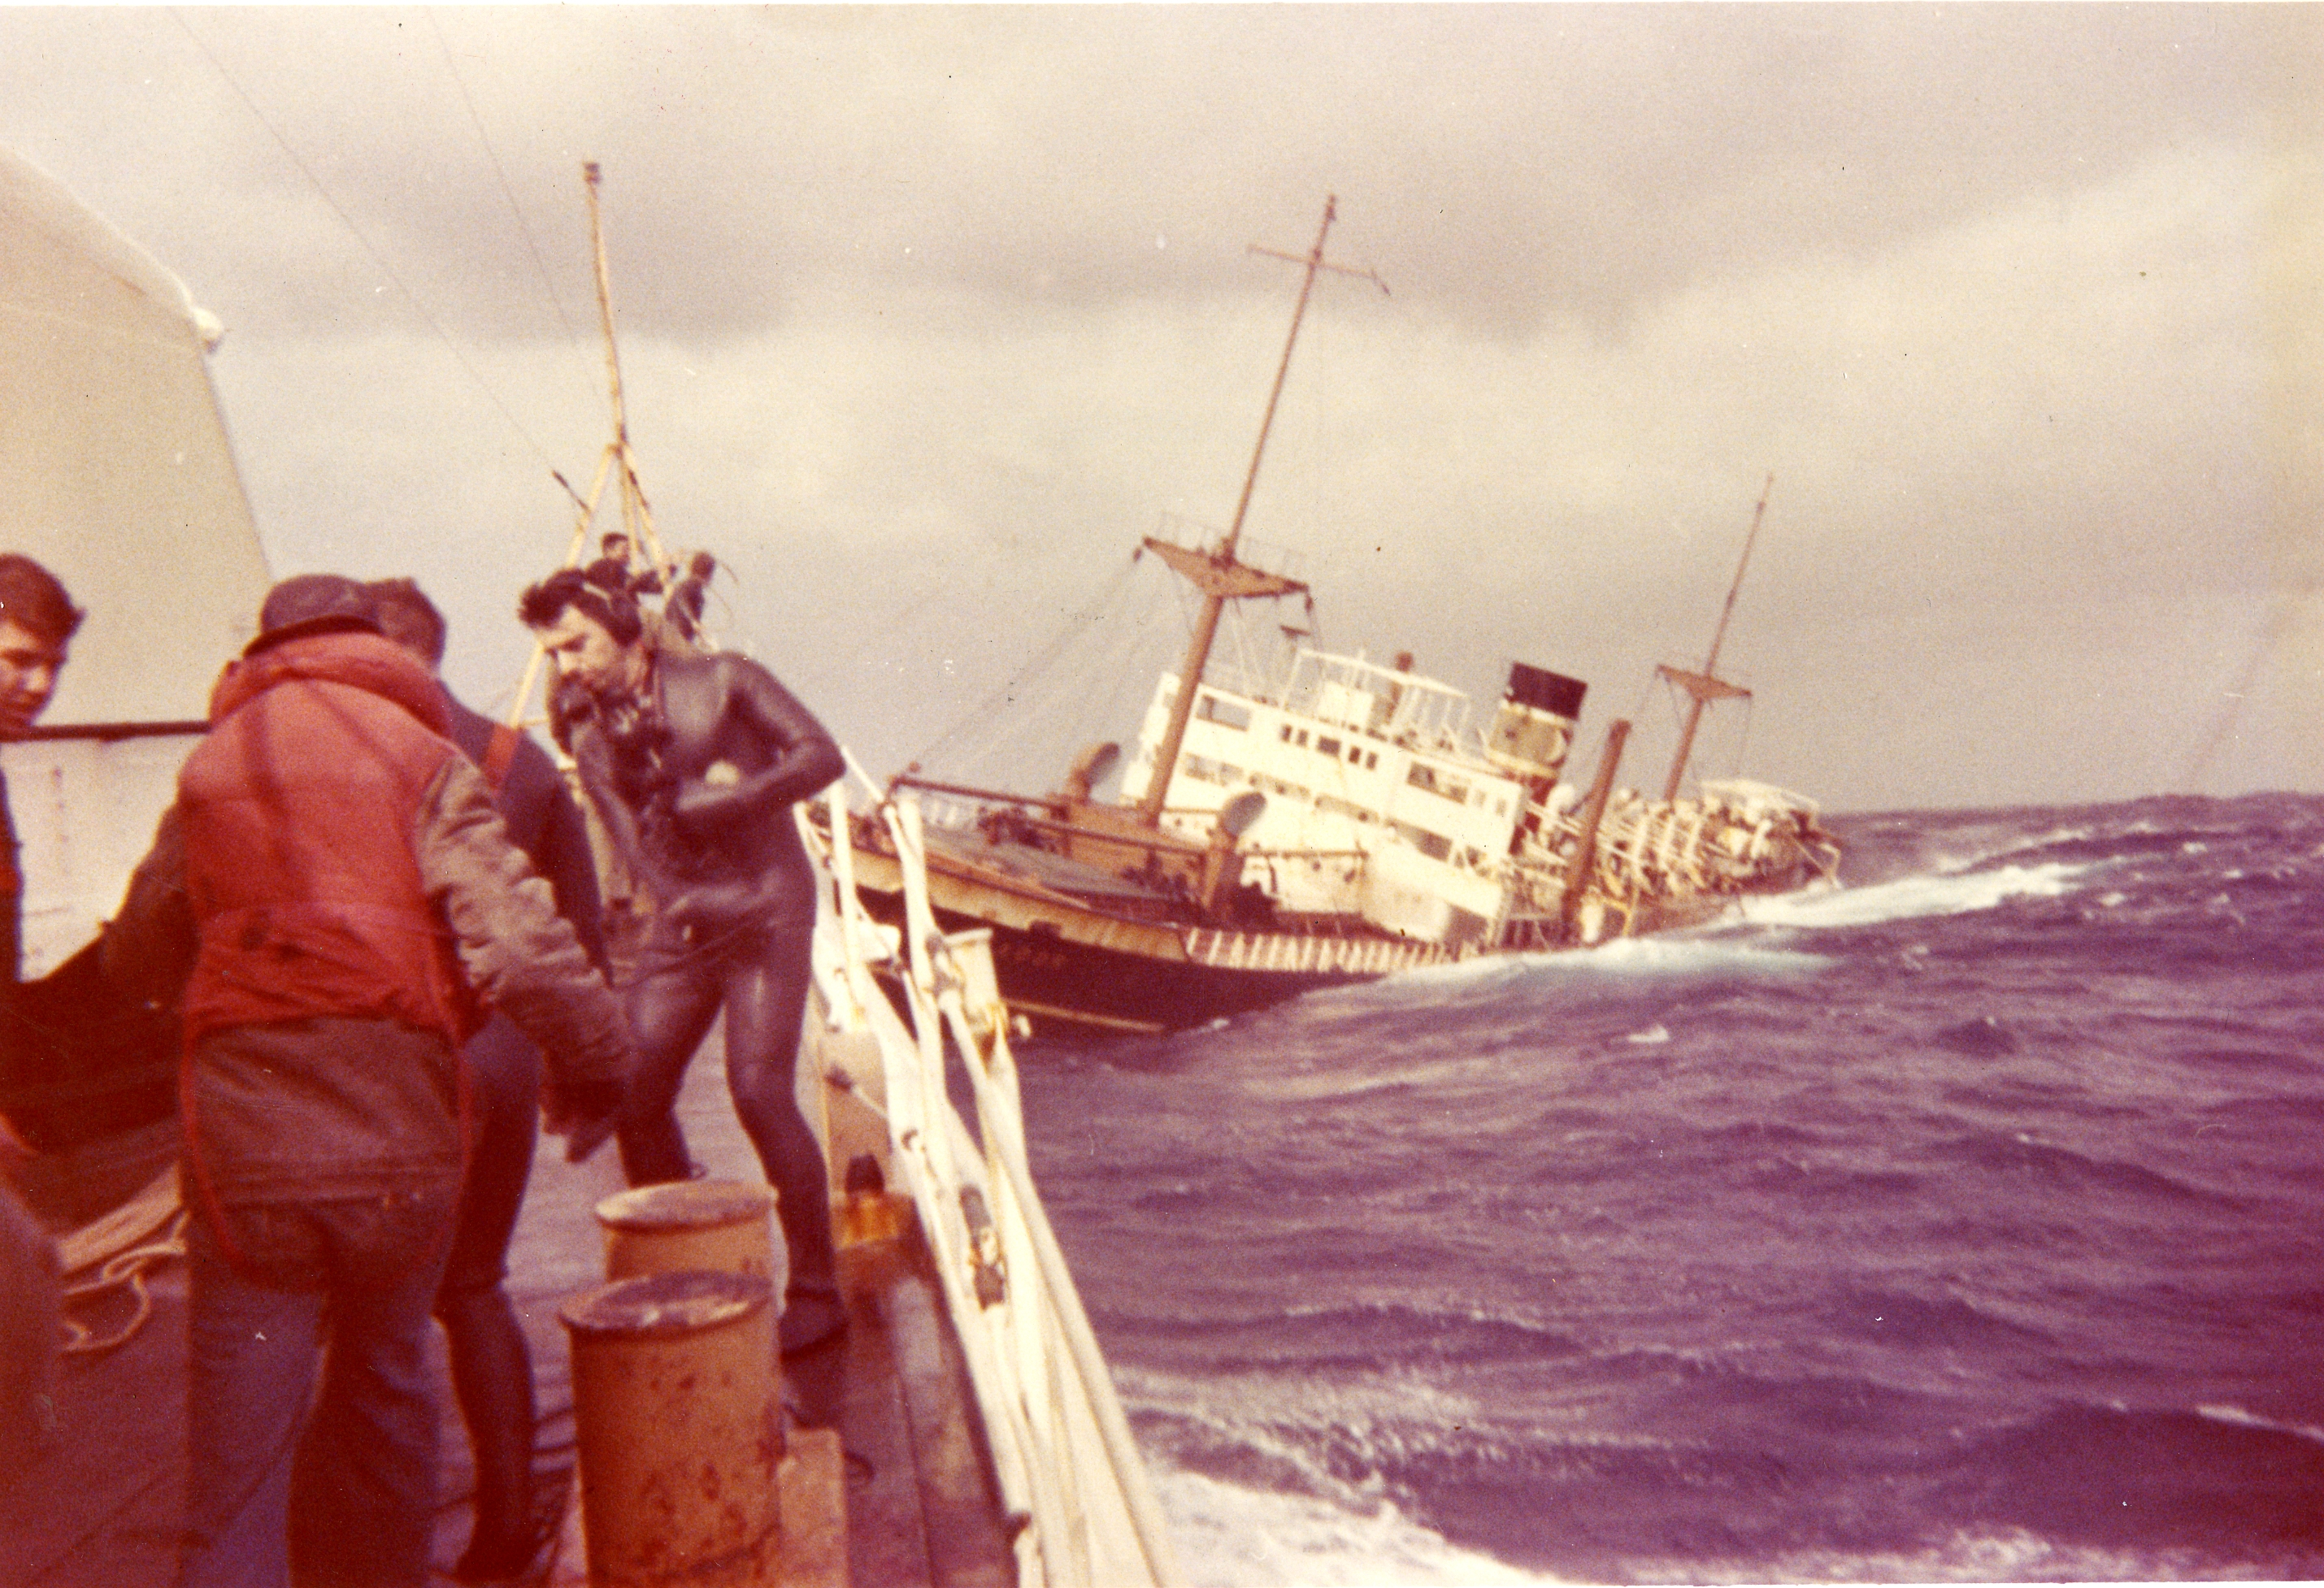 Responders, including one in a wetsuit, work on a vessel next to a sinking ship.